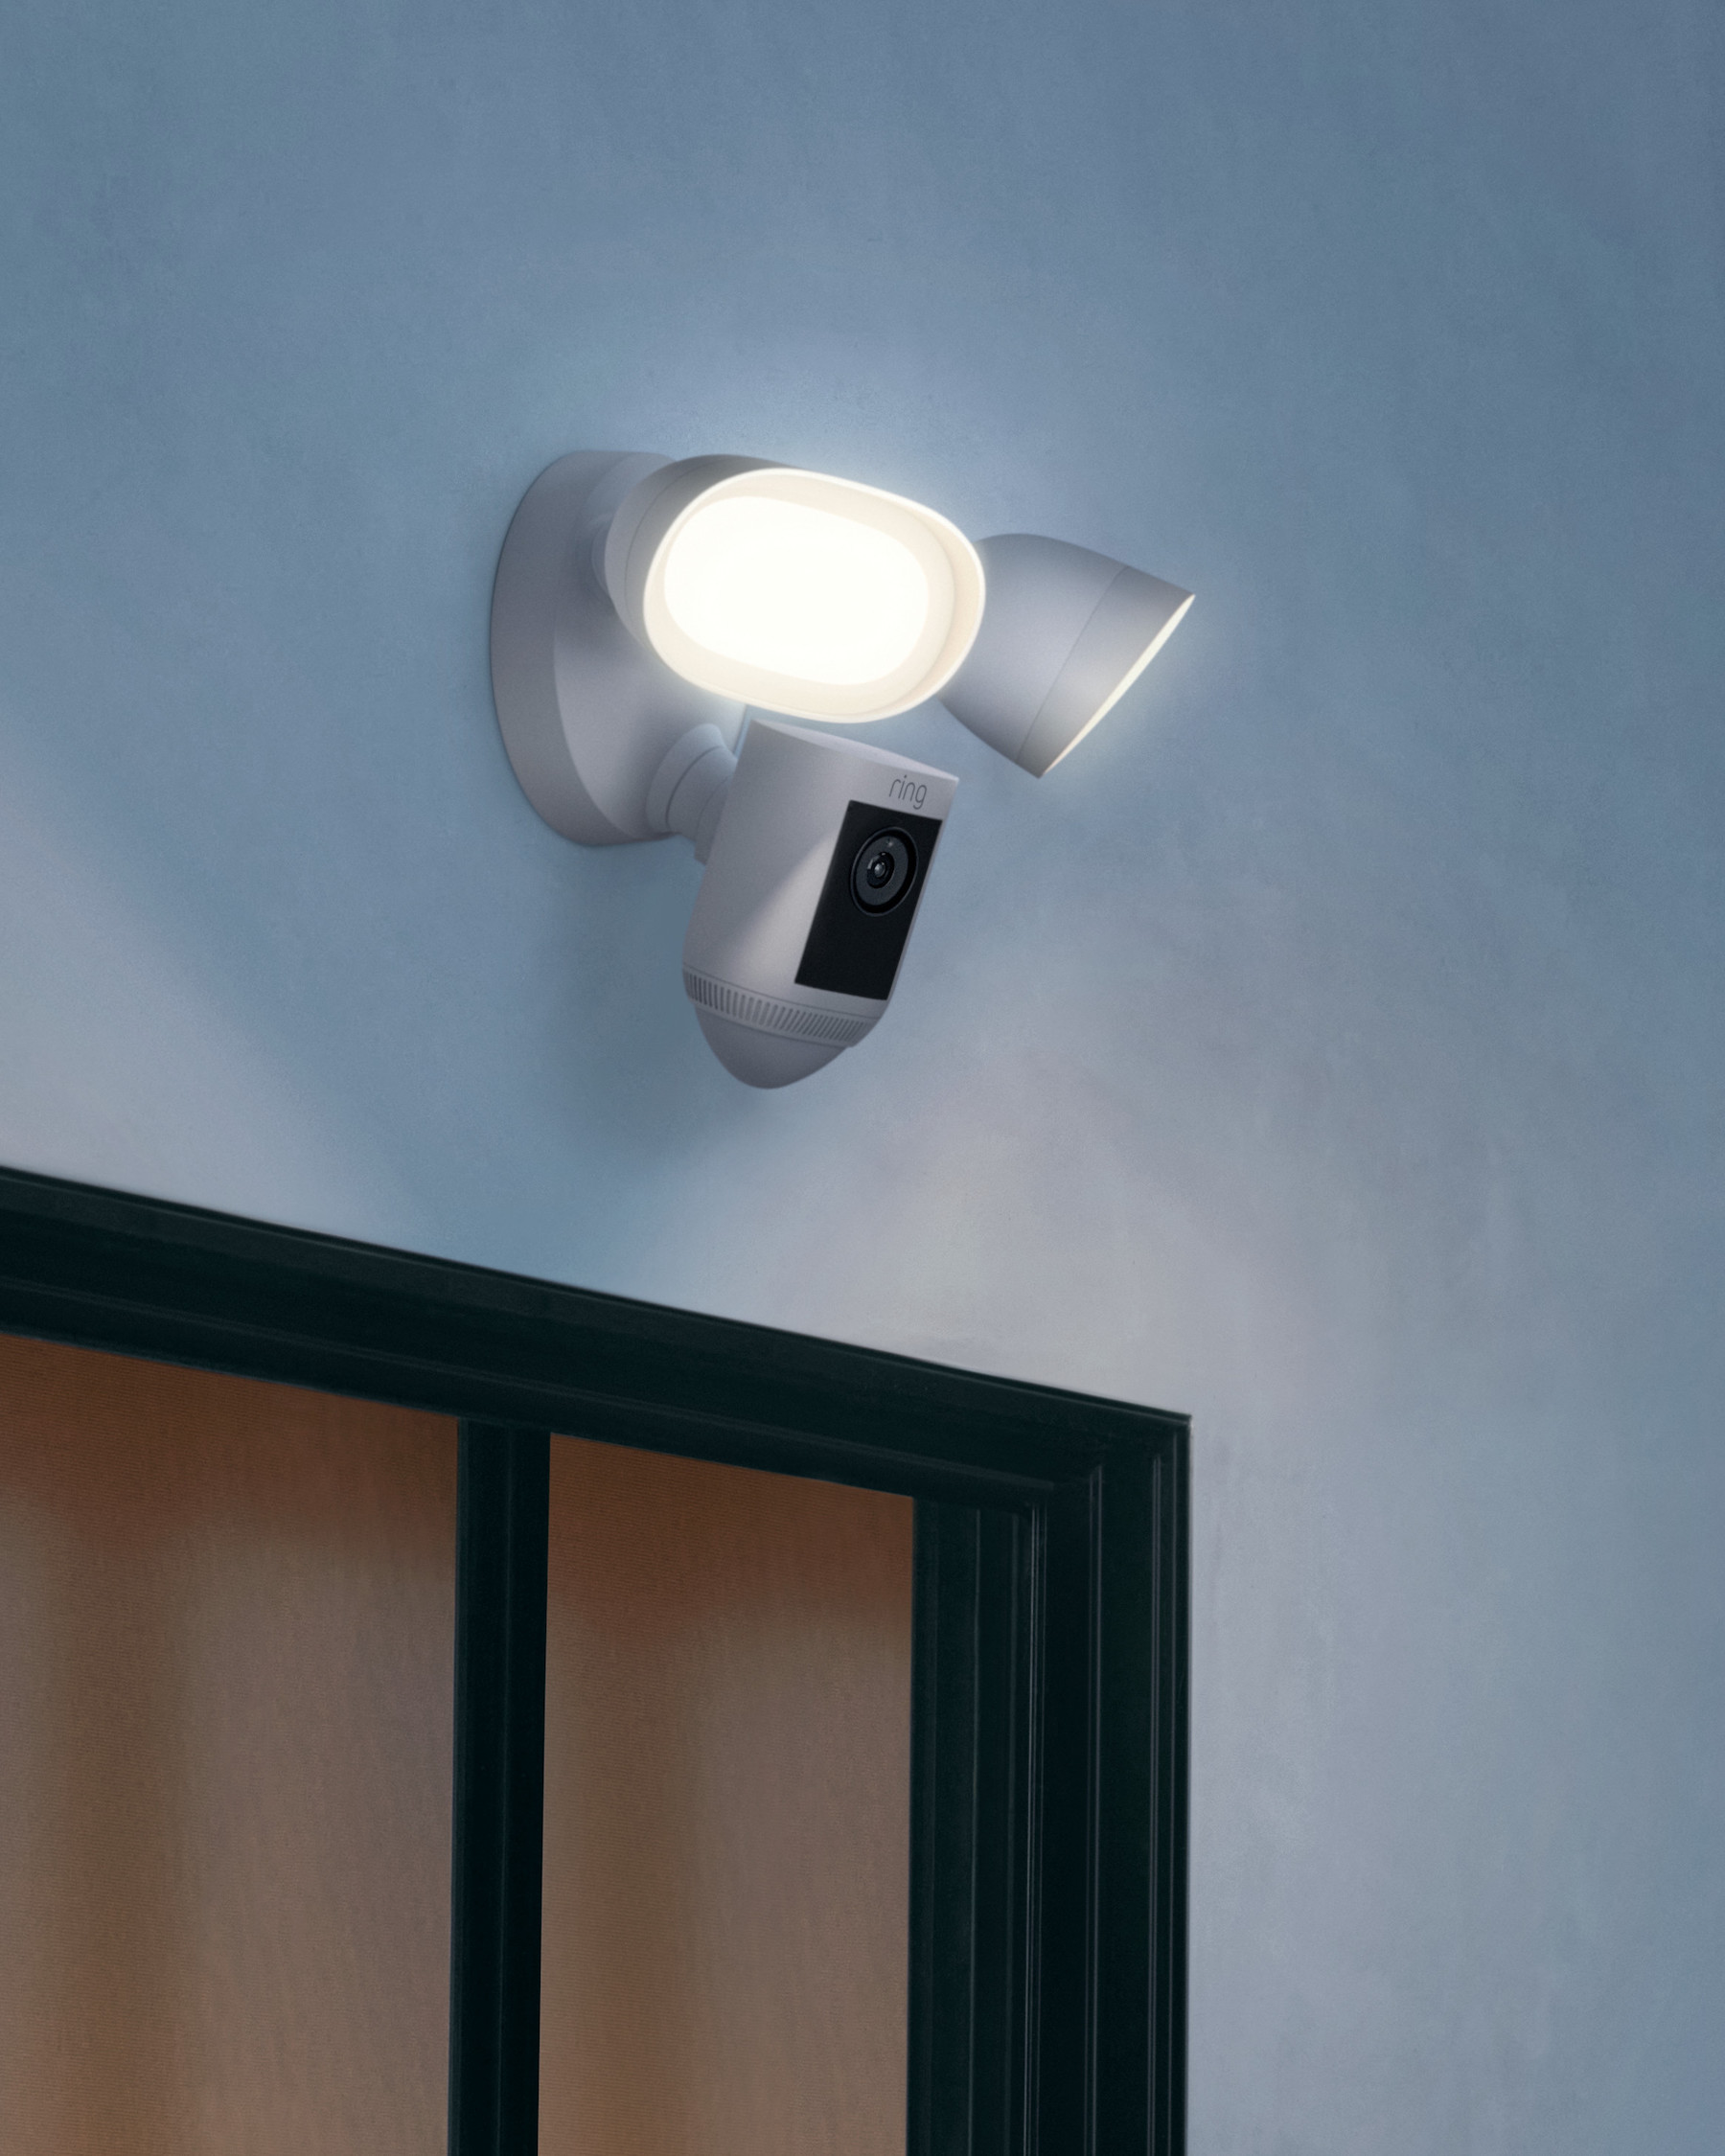 Ring releases new Floodlight Pro Wired Camera